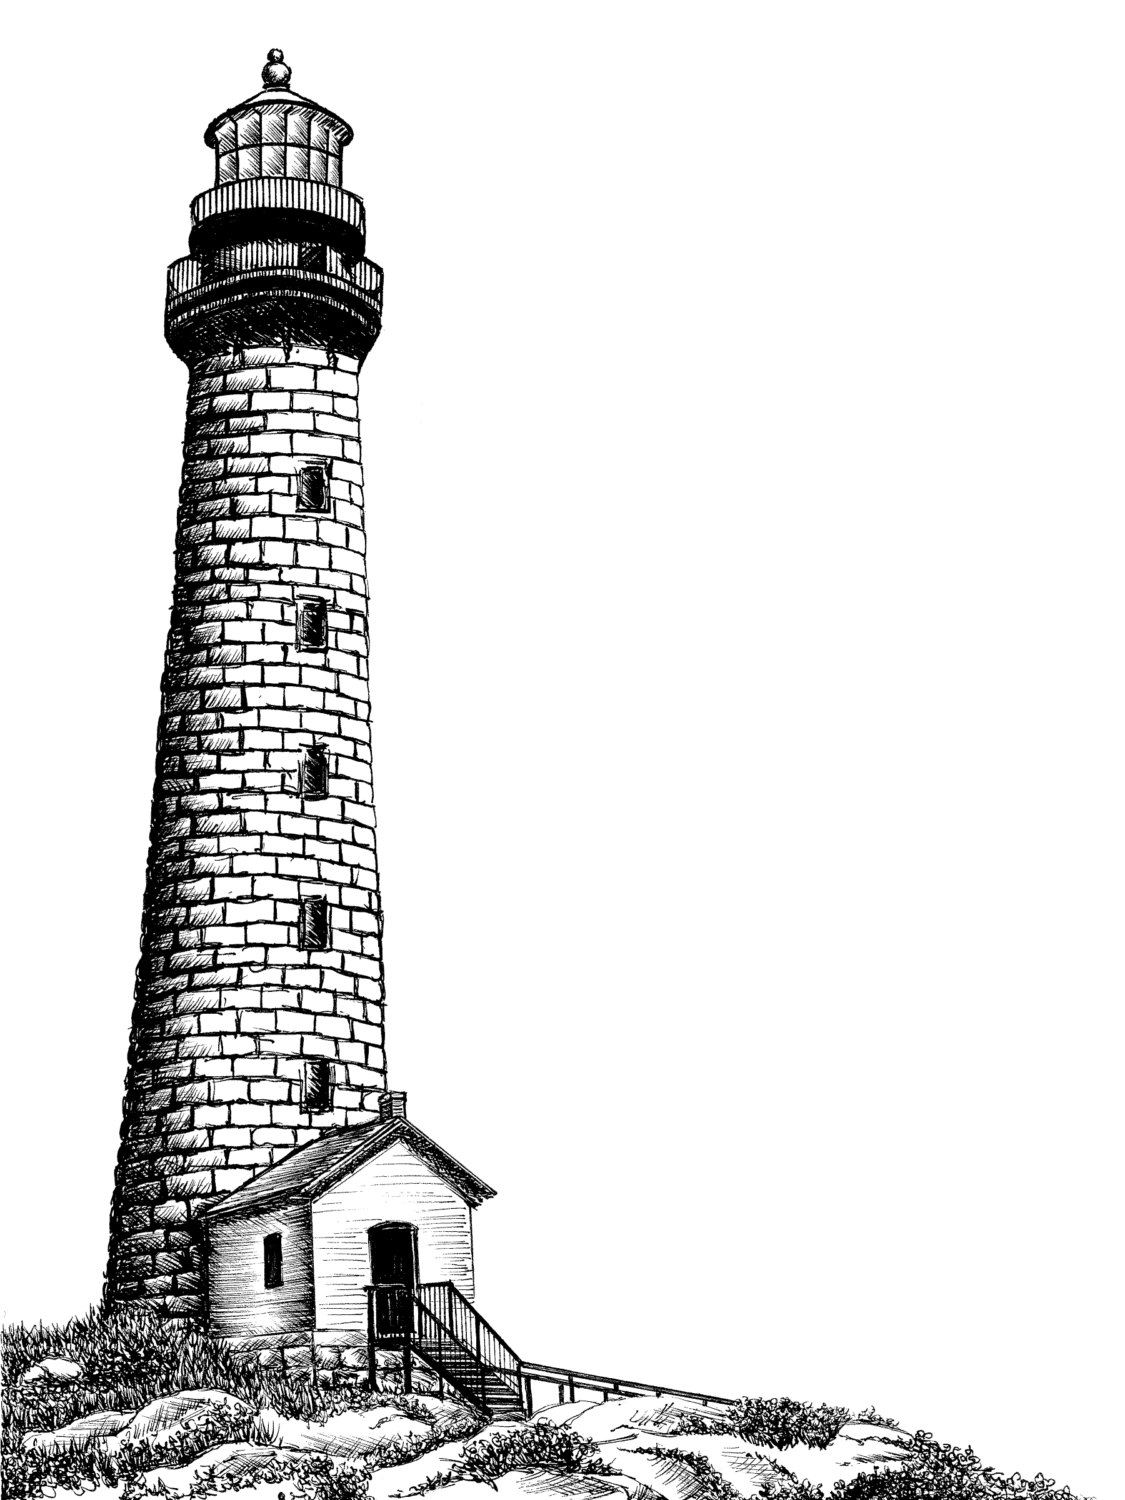 Drawn lighhouse black and white Glass Ink by on Rockport